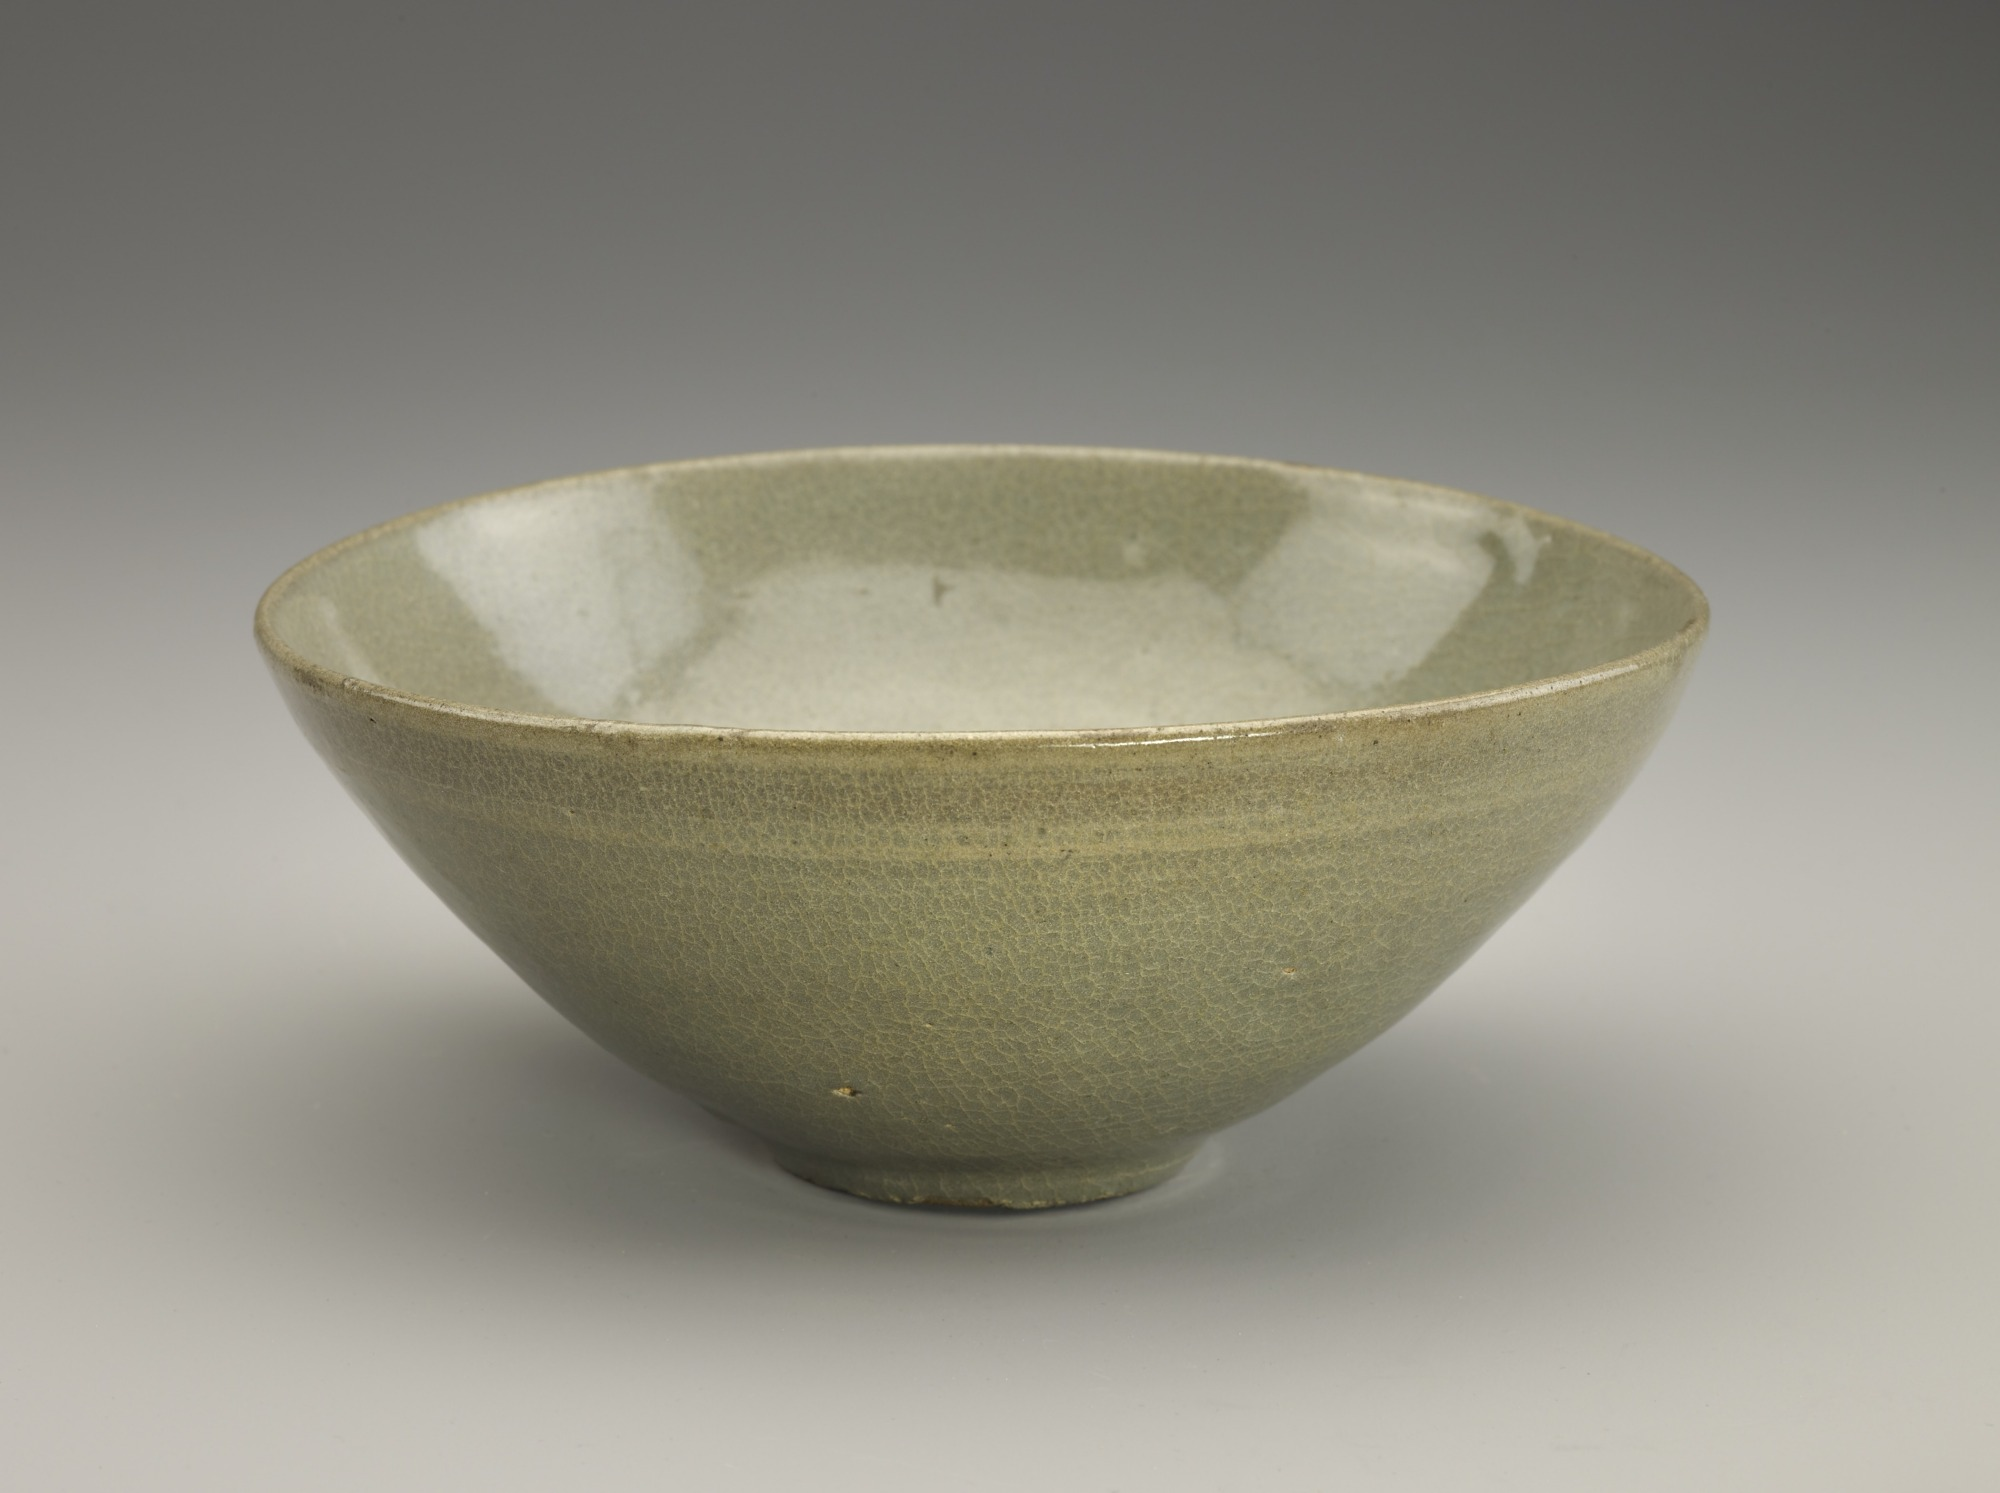 Bowl with molded decor, profile